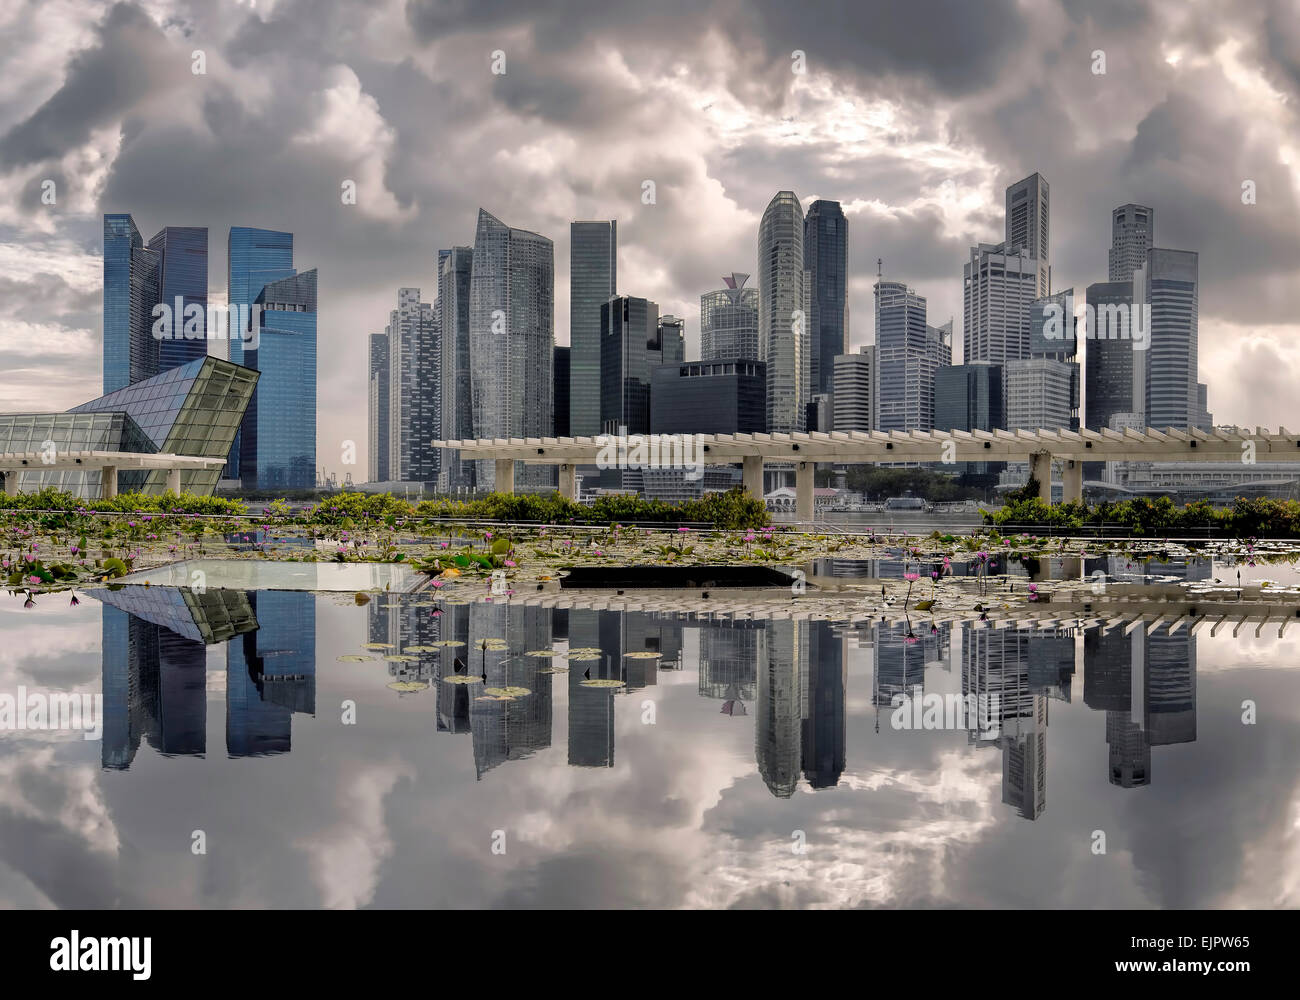 Reflections and clouds at marina bay, Singapore - Stock Image